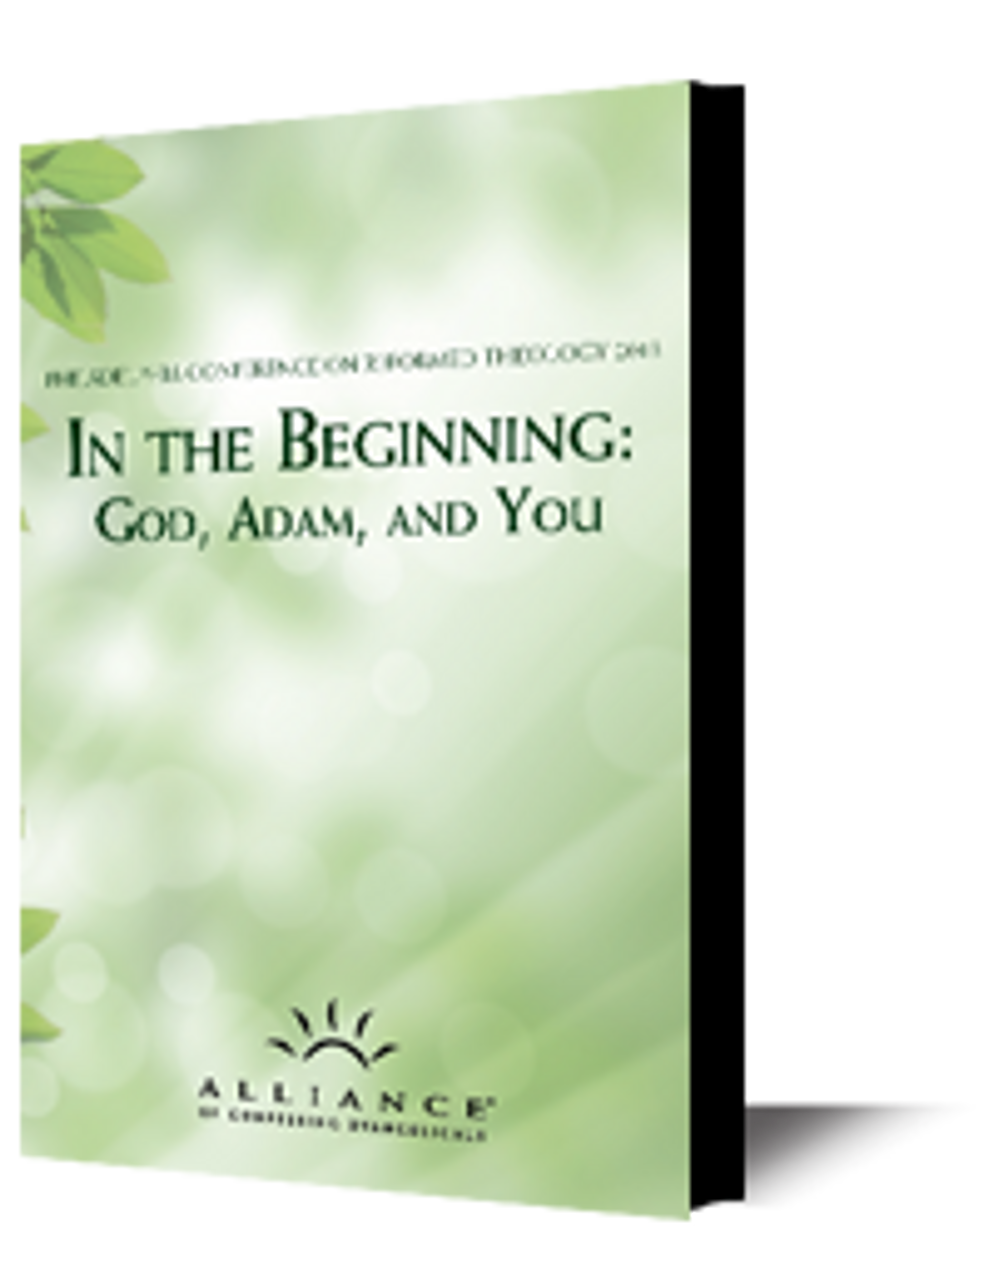 In the Beginning: God, Adam, and You PCRT 2013 Plenary Sessions (mp3 Disc)